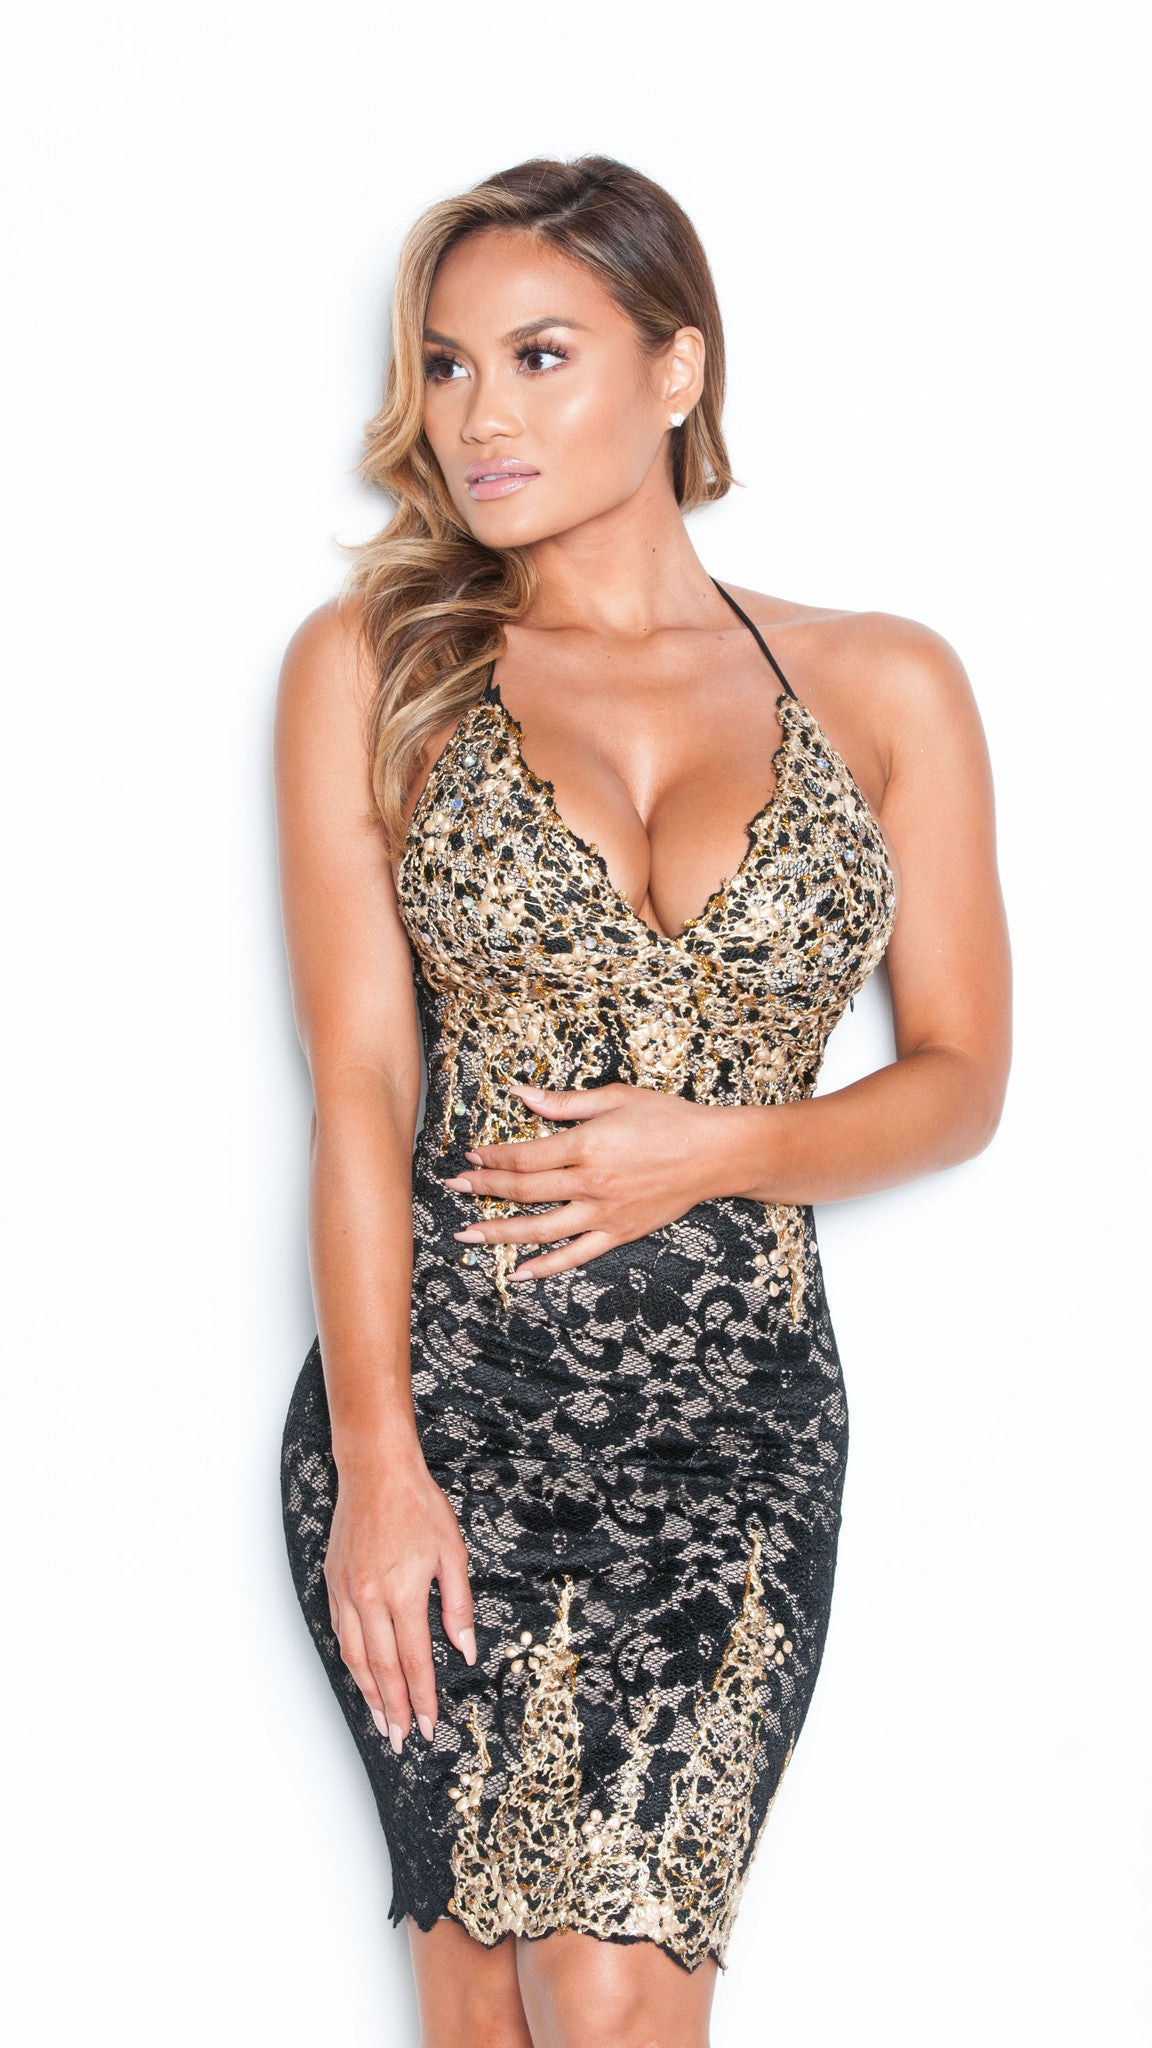 MADION DRESS IN BLACK WITH GOLD